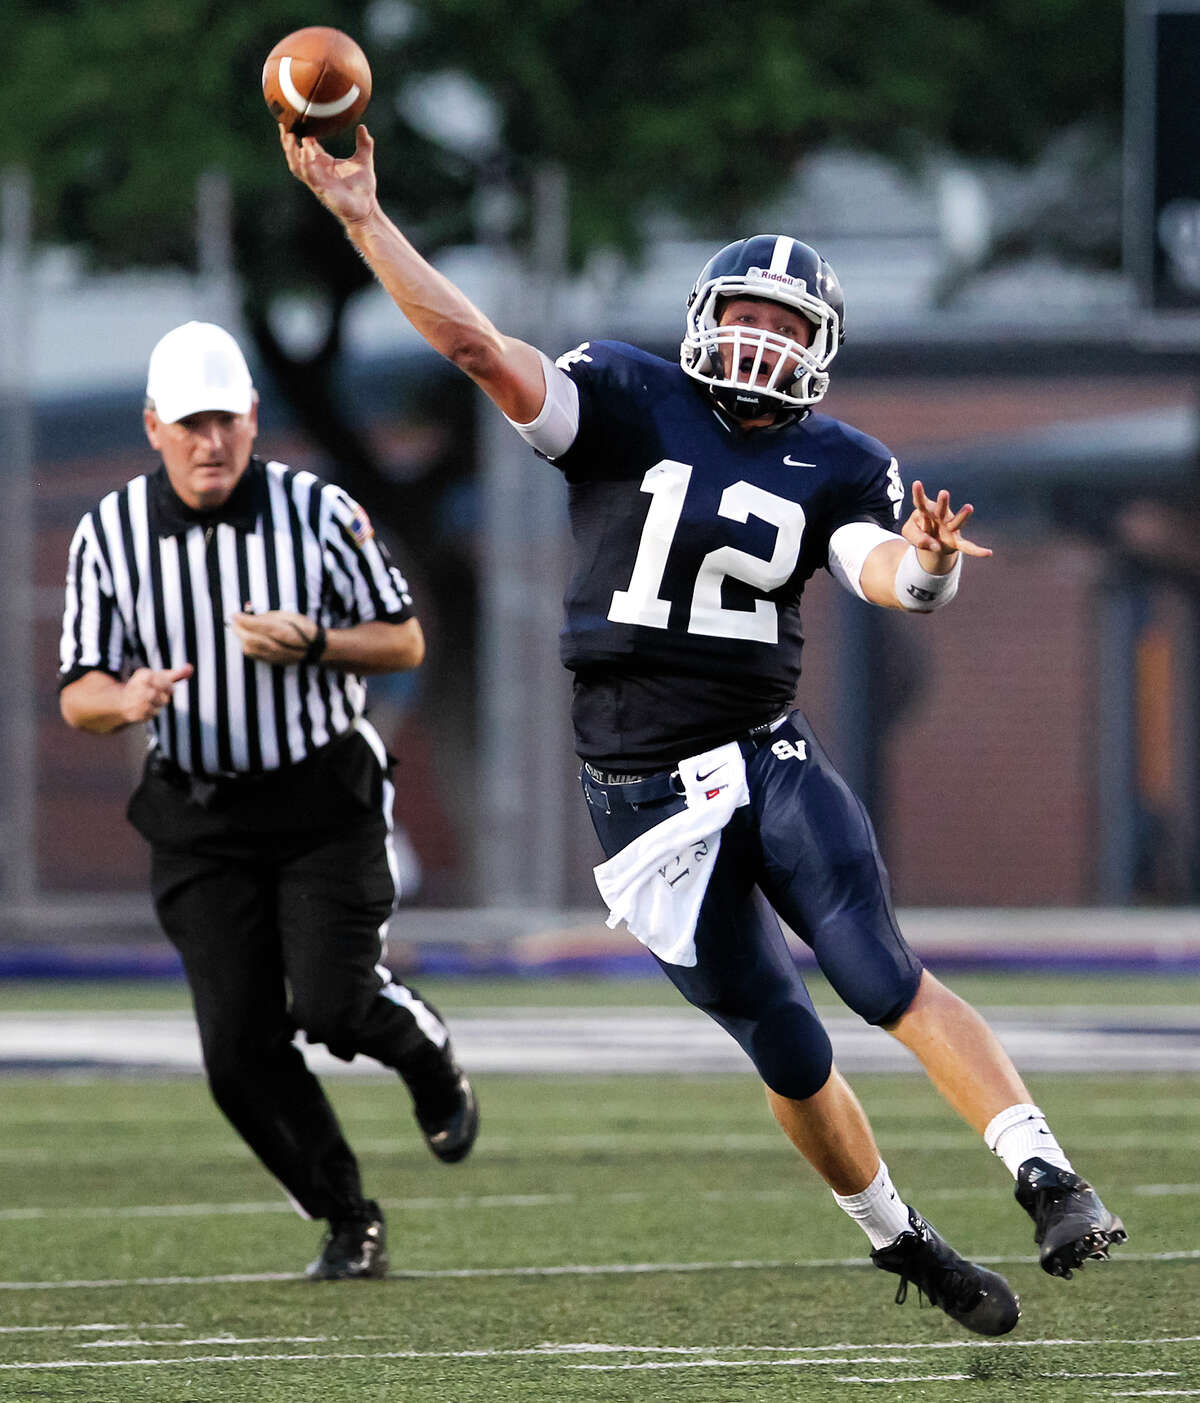 Smithson Valley quarterback Garrett Smith throws a pass during the first half of their game with Brandeis at Ranger Stadium on Friday, Aug. 30, 2013. Smithson Valley beat the Broncos 31-12. MARVIN PFEIFFER/ mpfeiffer@express-news.net